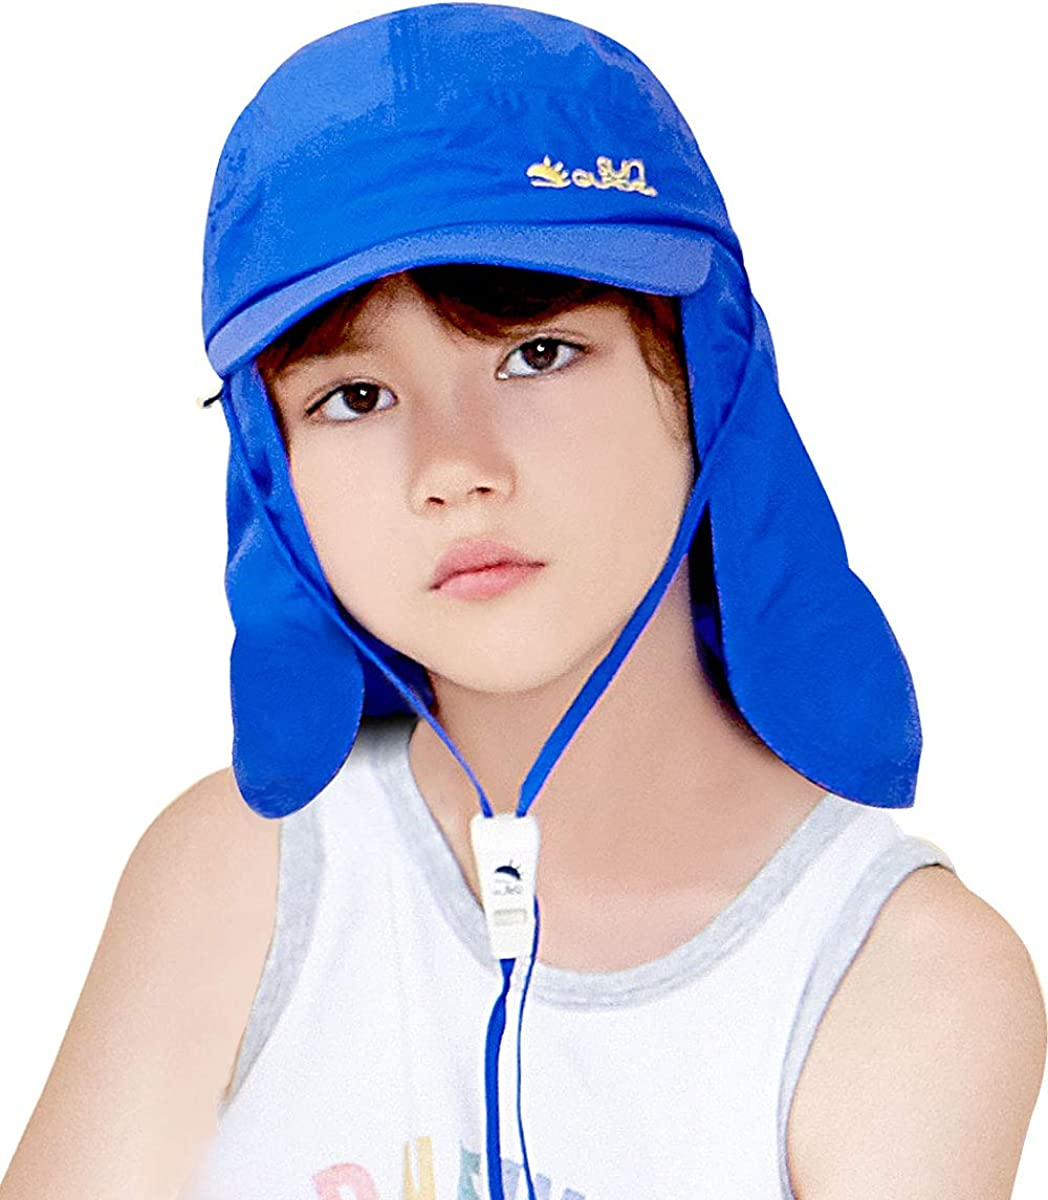 Kids Sun Baseball Cap with Neck Flap, Sun Protection UPF50+, Whistle cordlock, for Boys and Girls